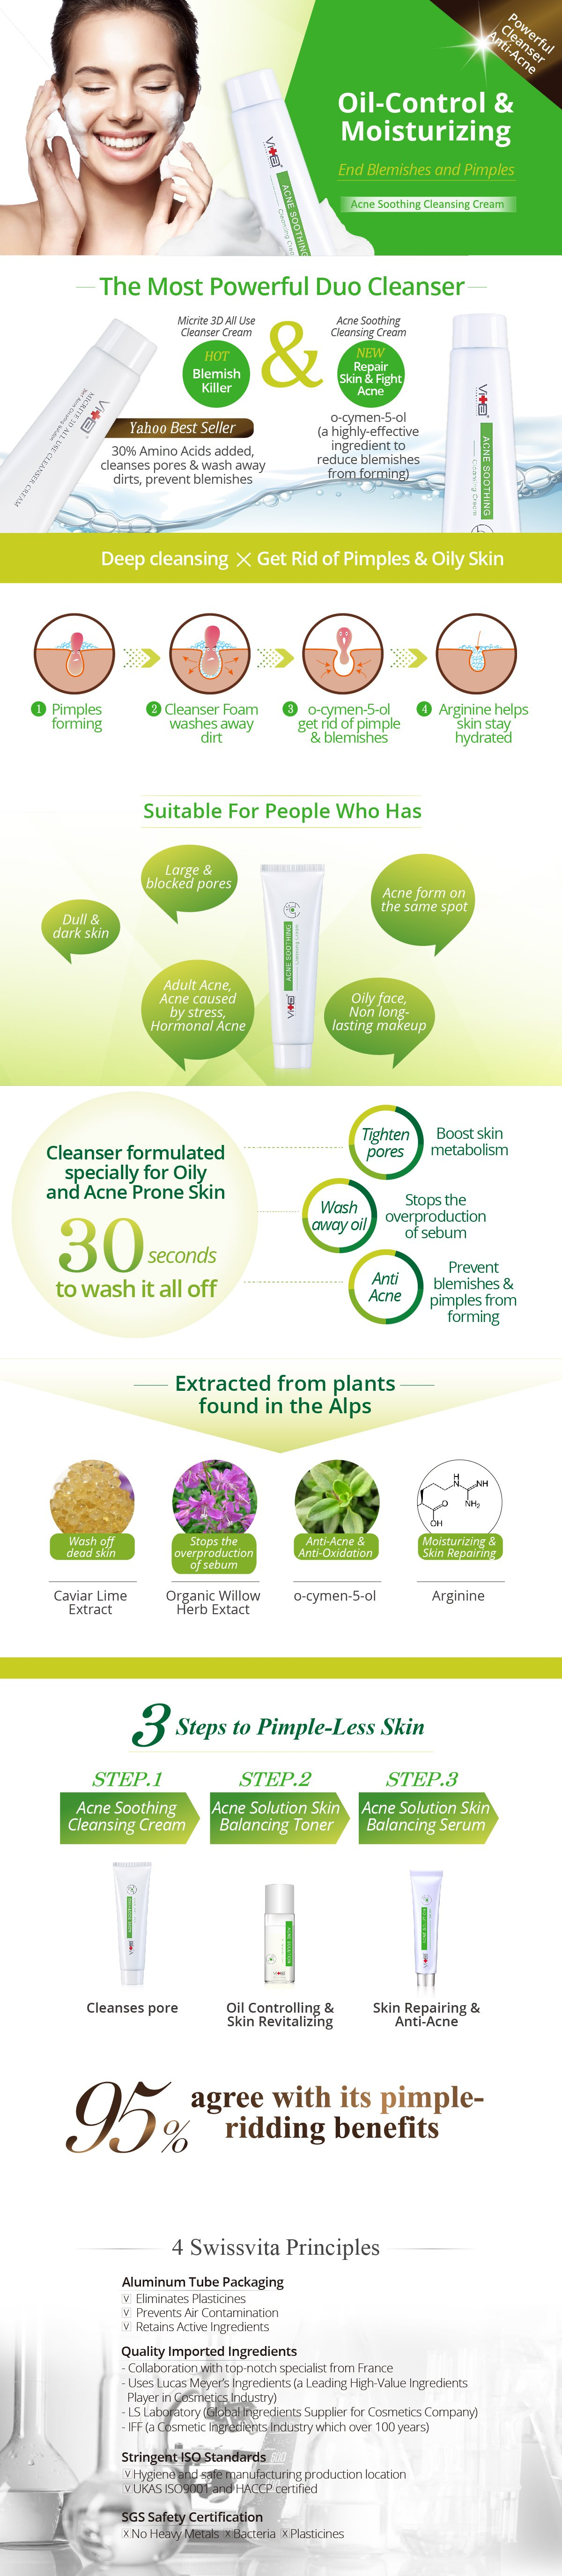 Acne Soothing Cleansing Cream - Description Image